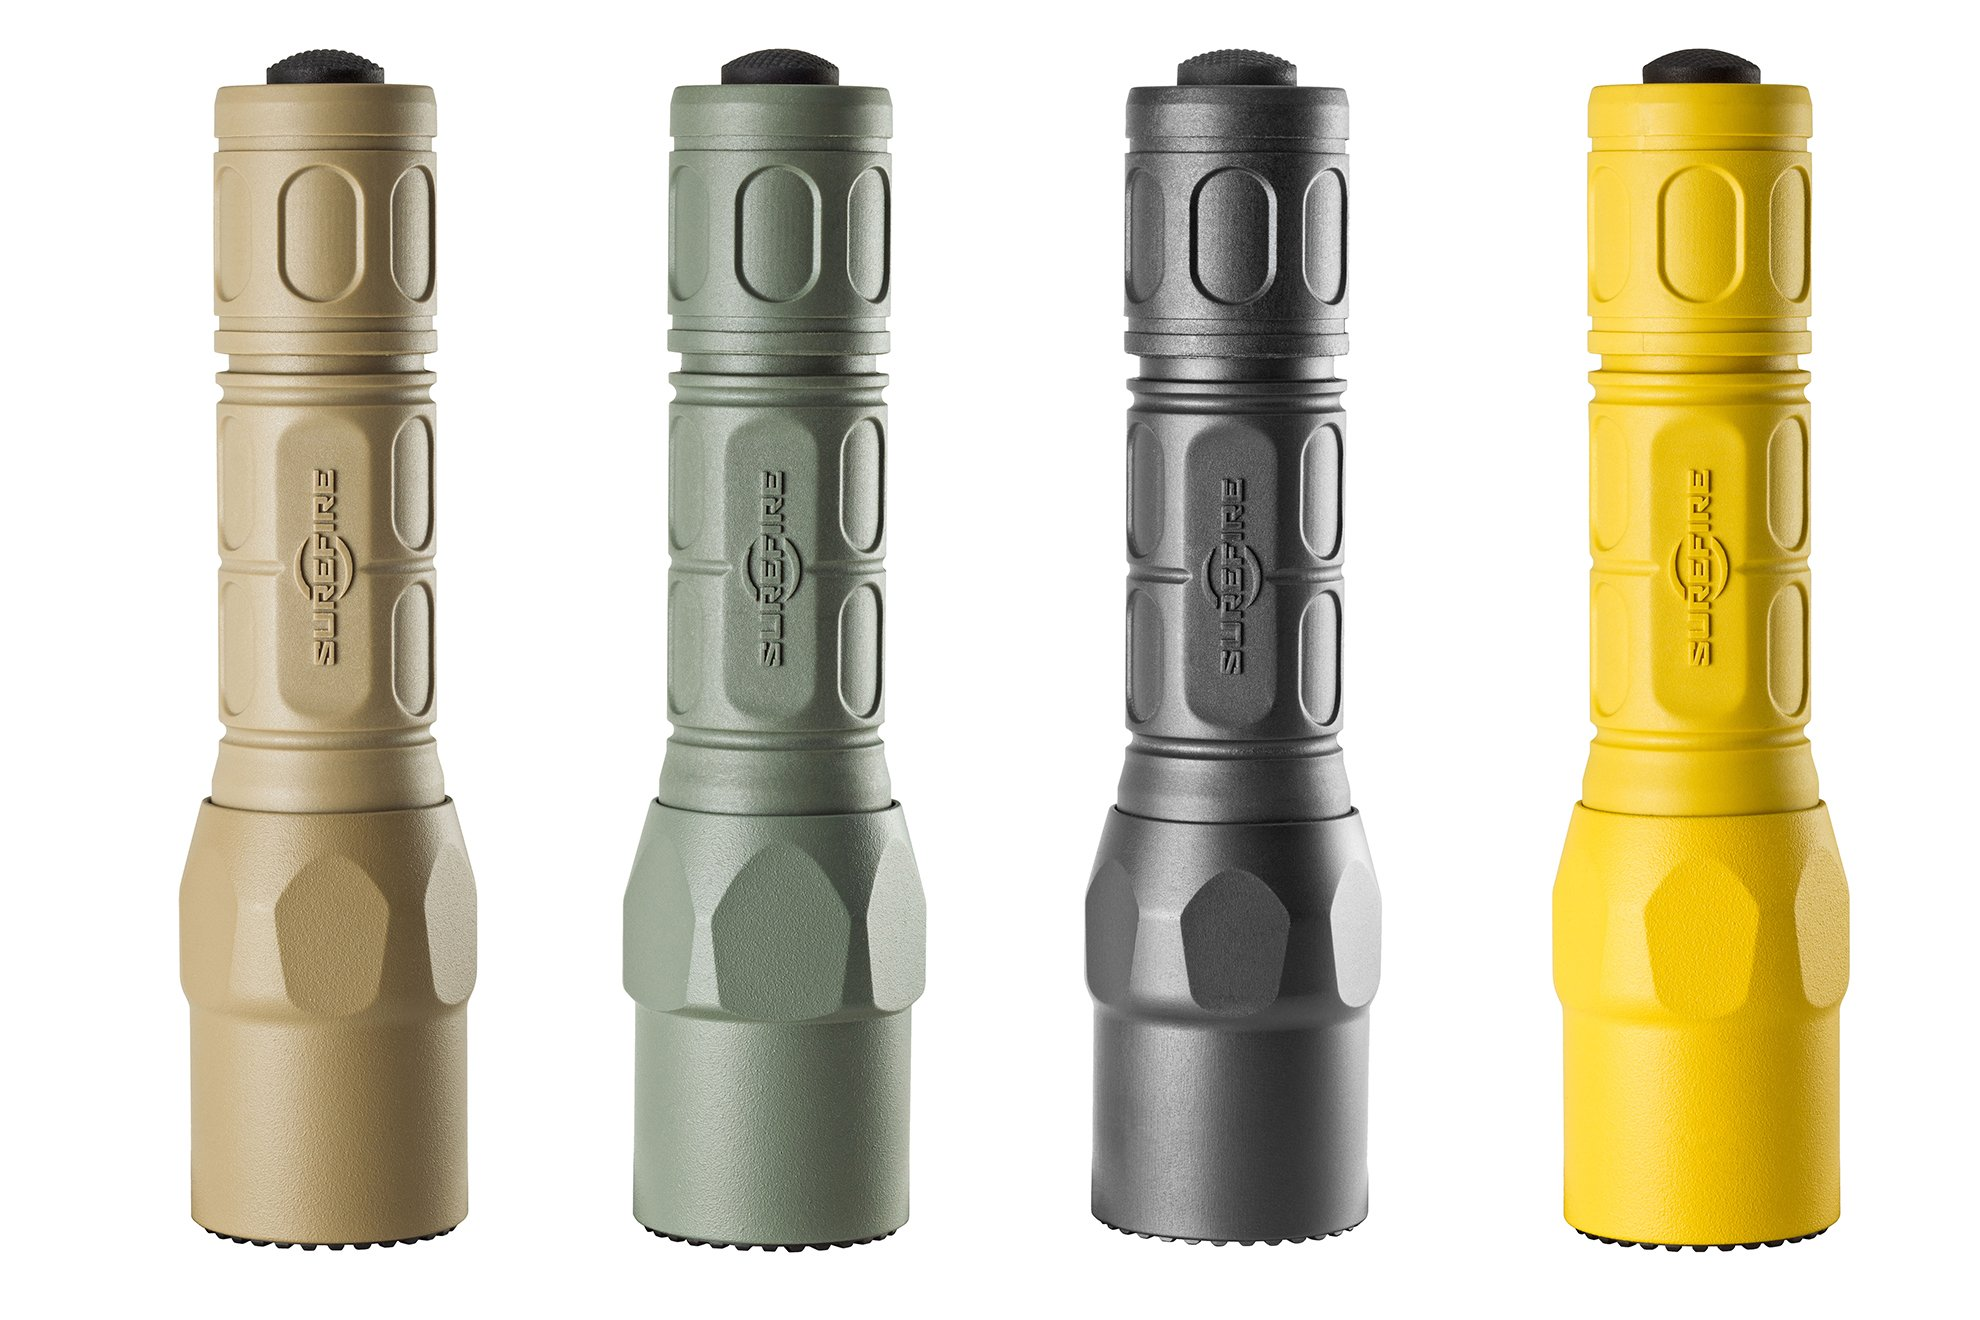 SureFire G2 available in multiple colors